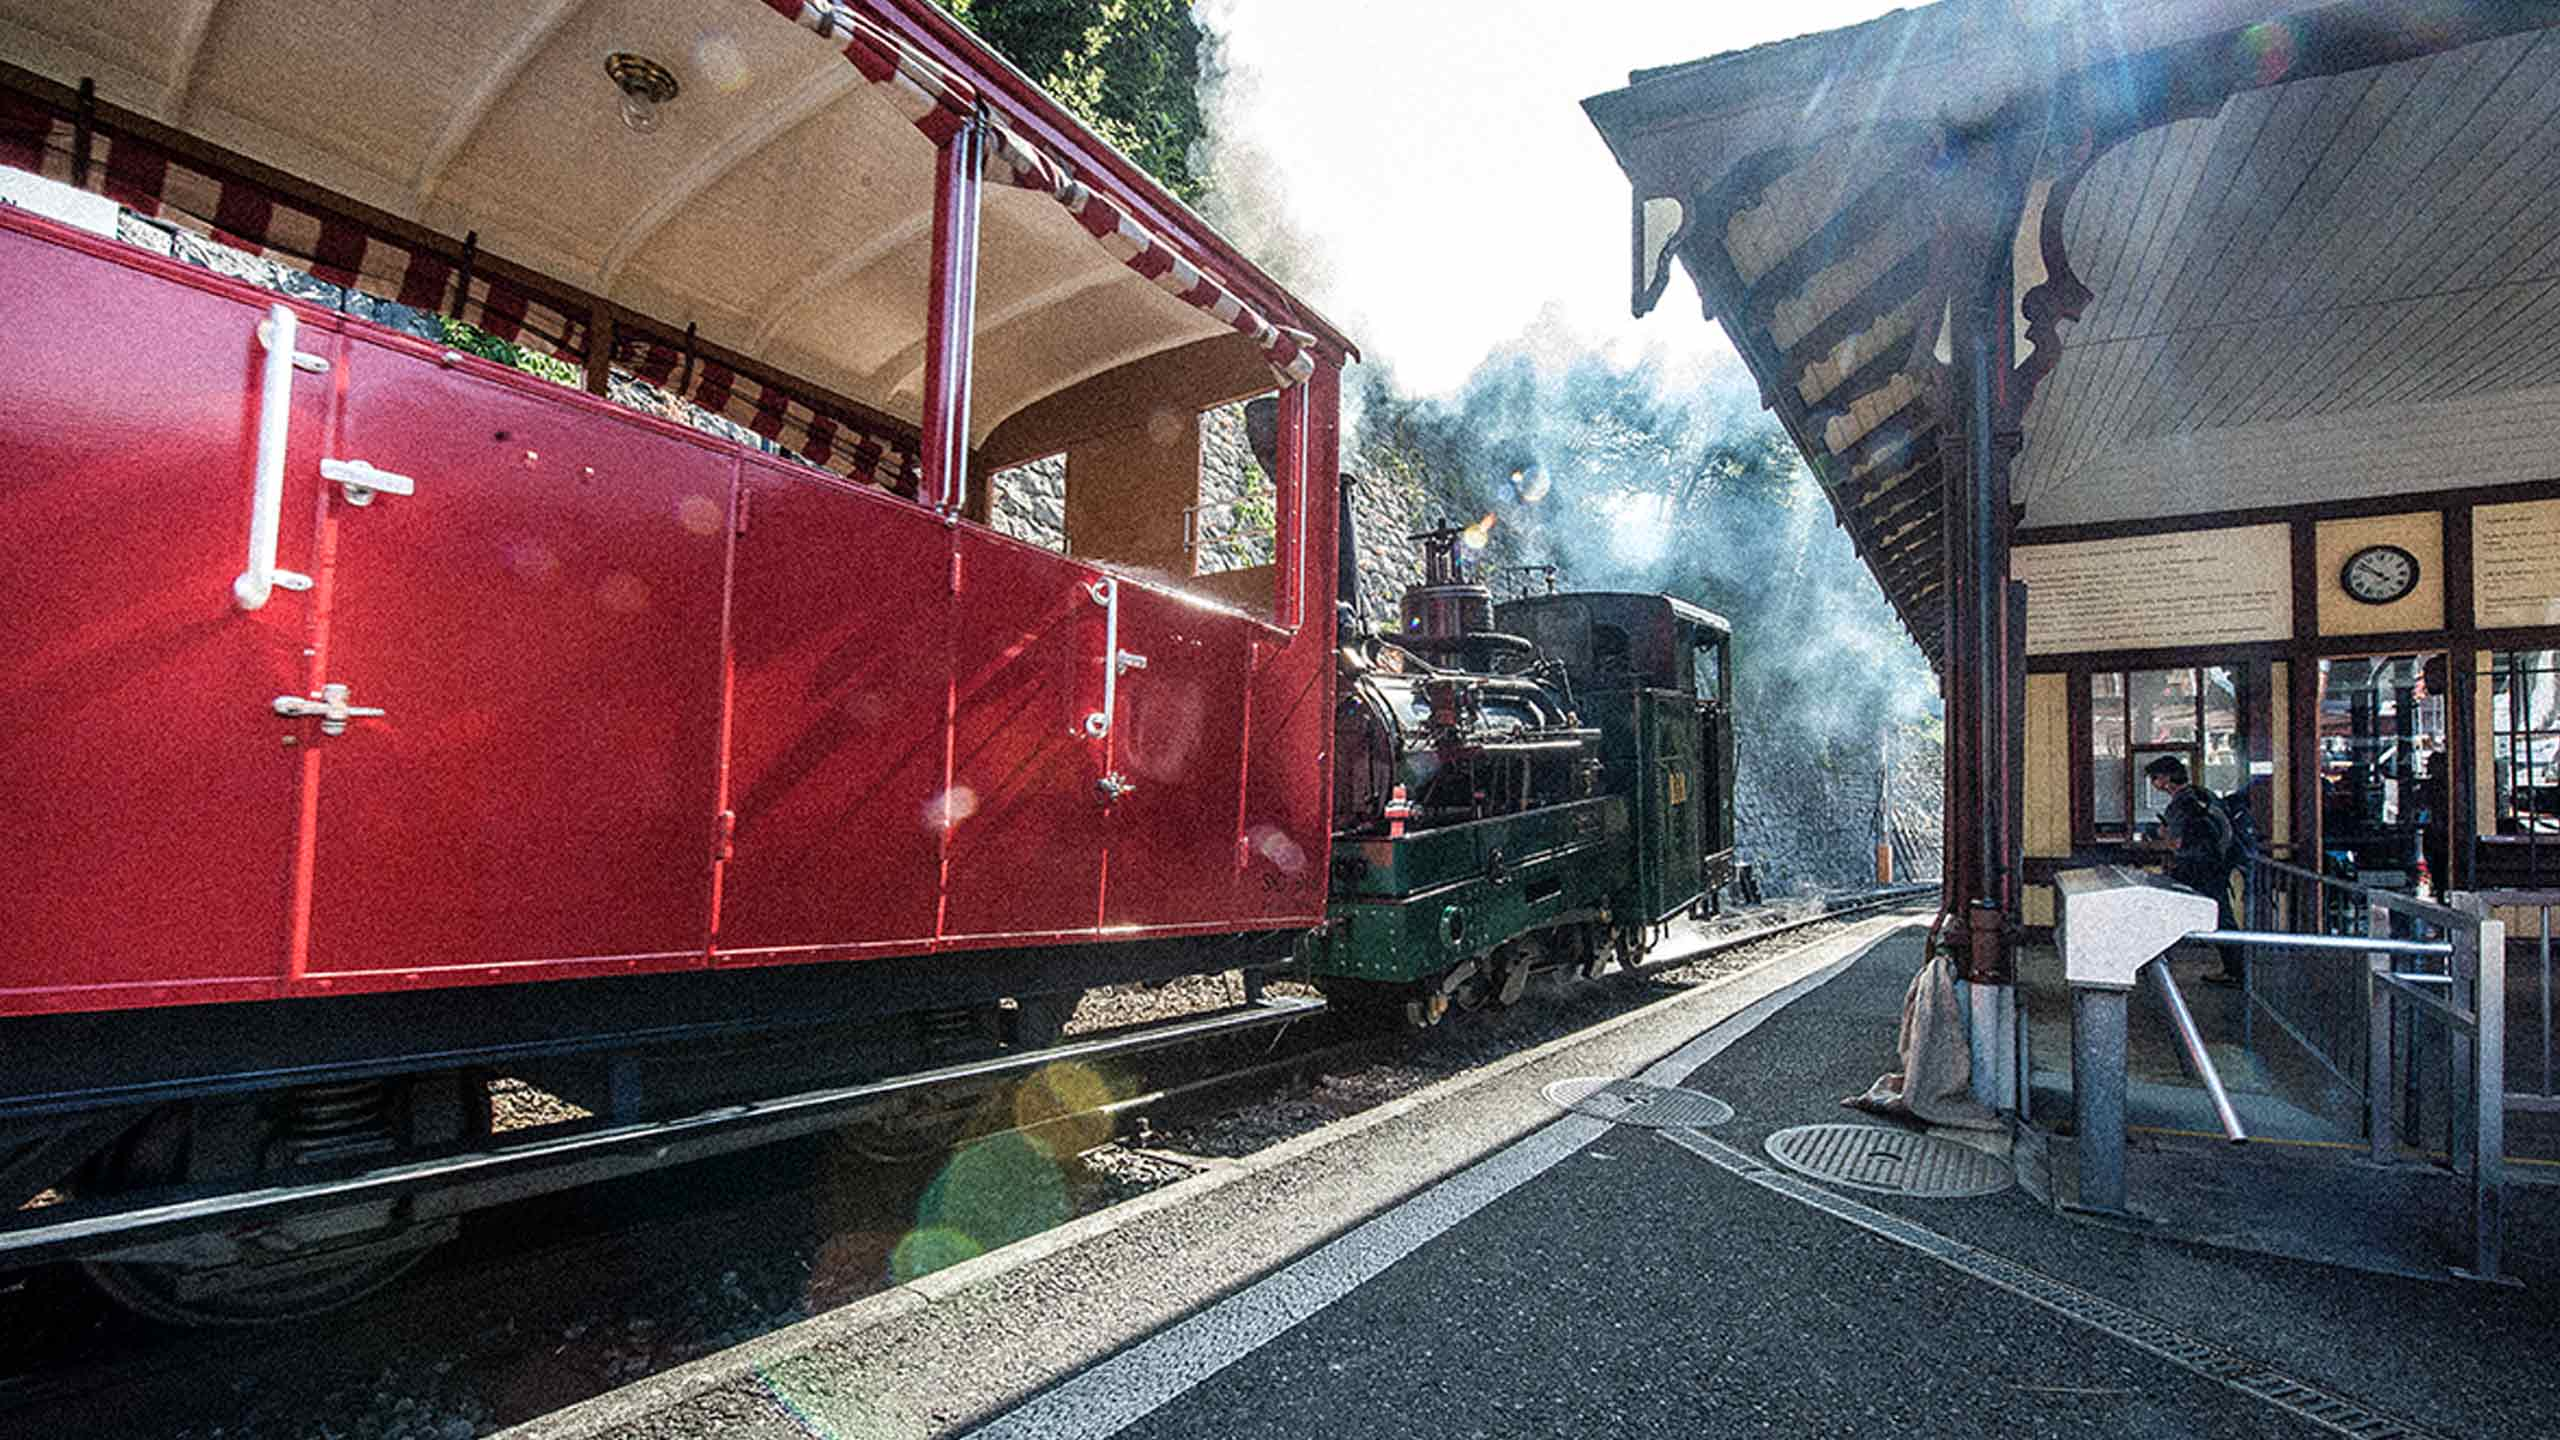 brienz-rothorn-bahn-talstation-dampflokomotive-wagen.jpg